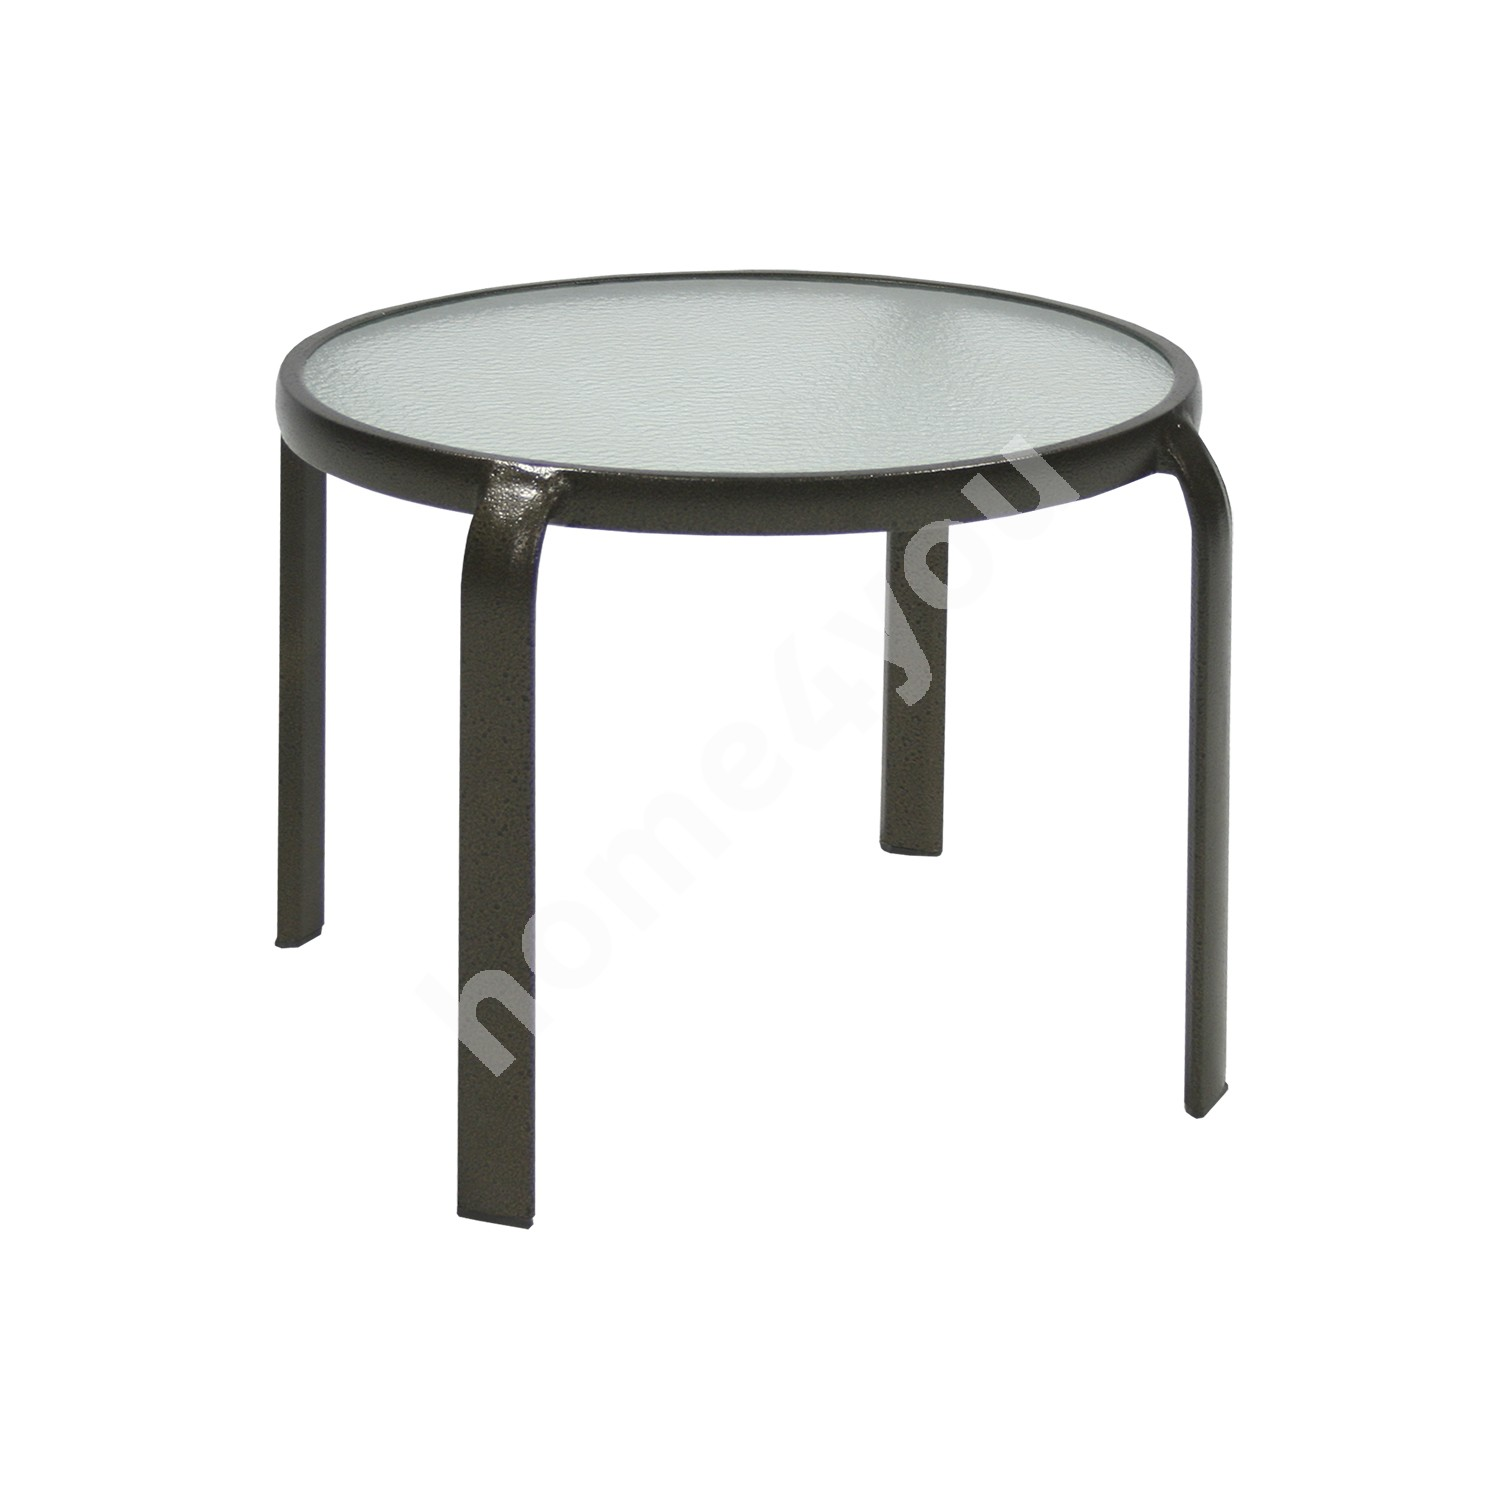 Side table MONTREAL D52xH43cm, table top: tempered glass, aluminum frame, color: brown